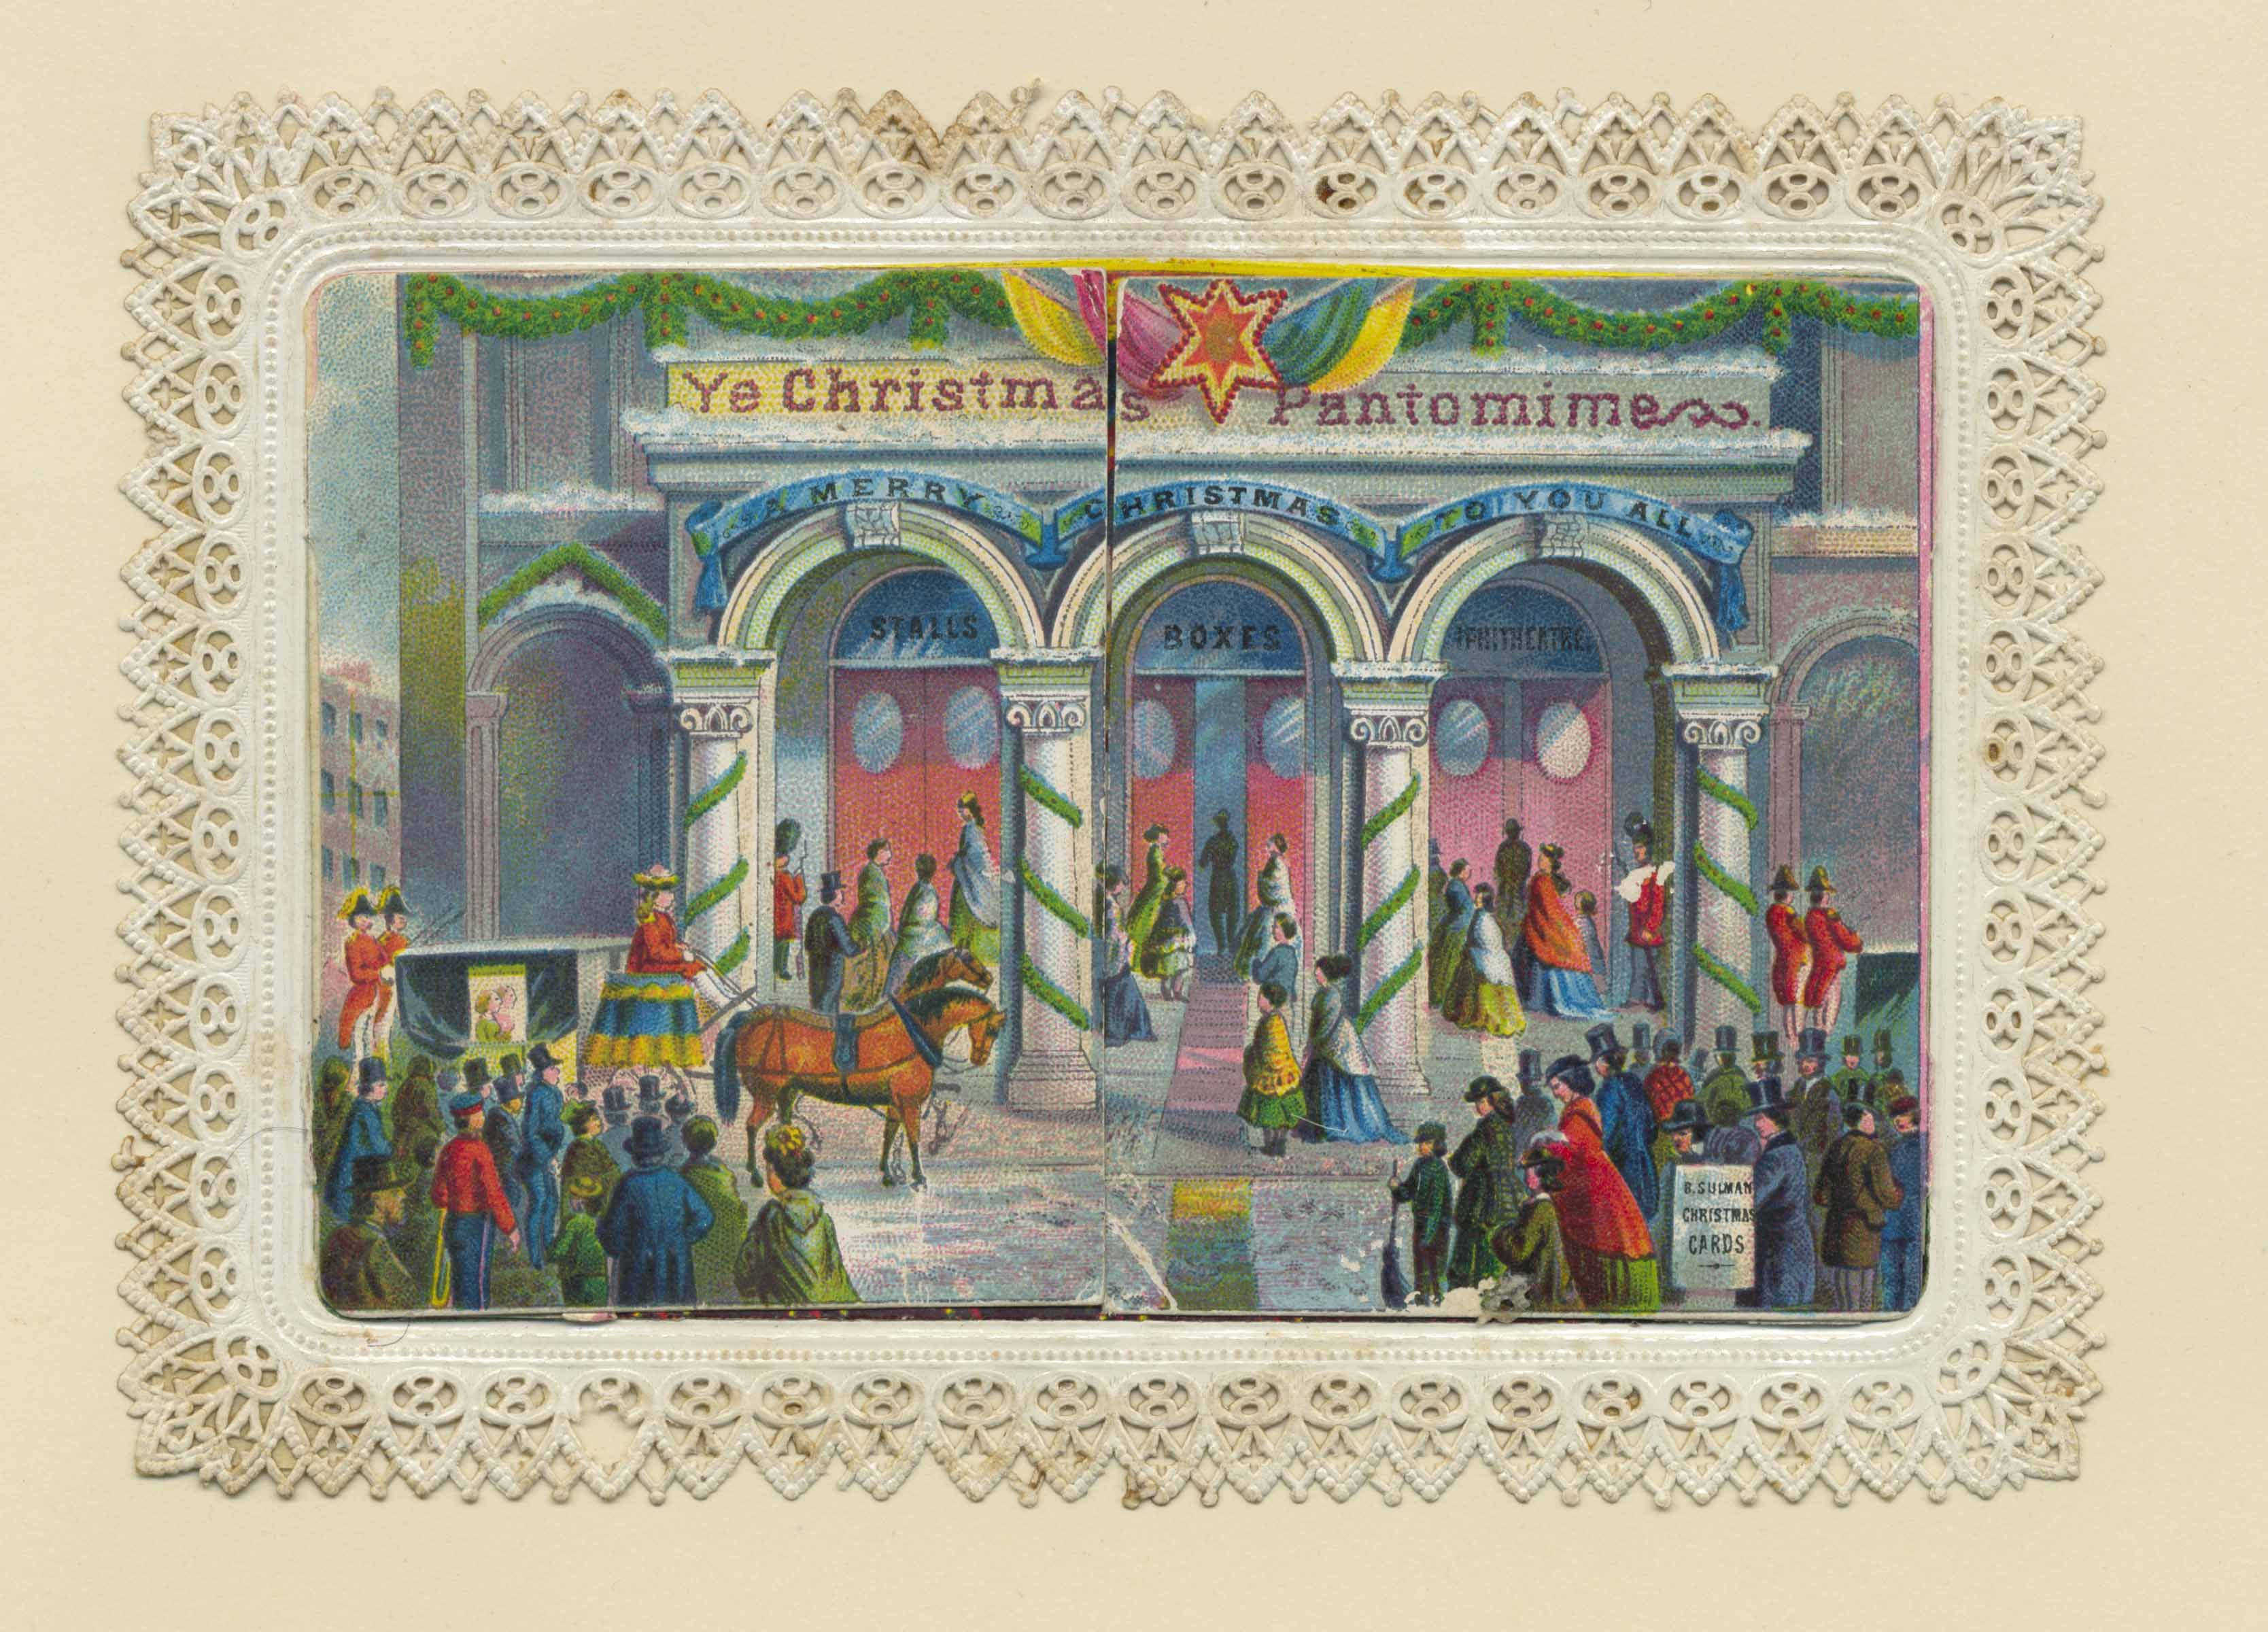 Pantomime card with elaborate springs revealing a stage with a pantomime in progress.